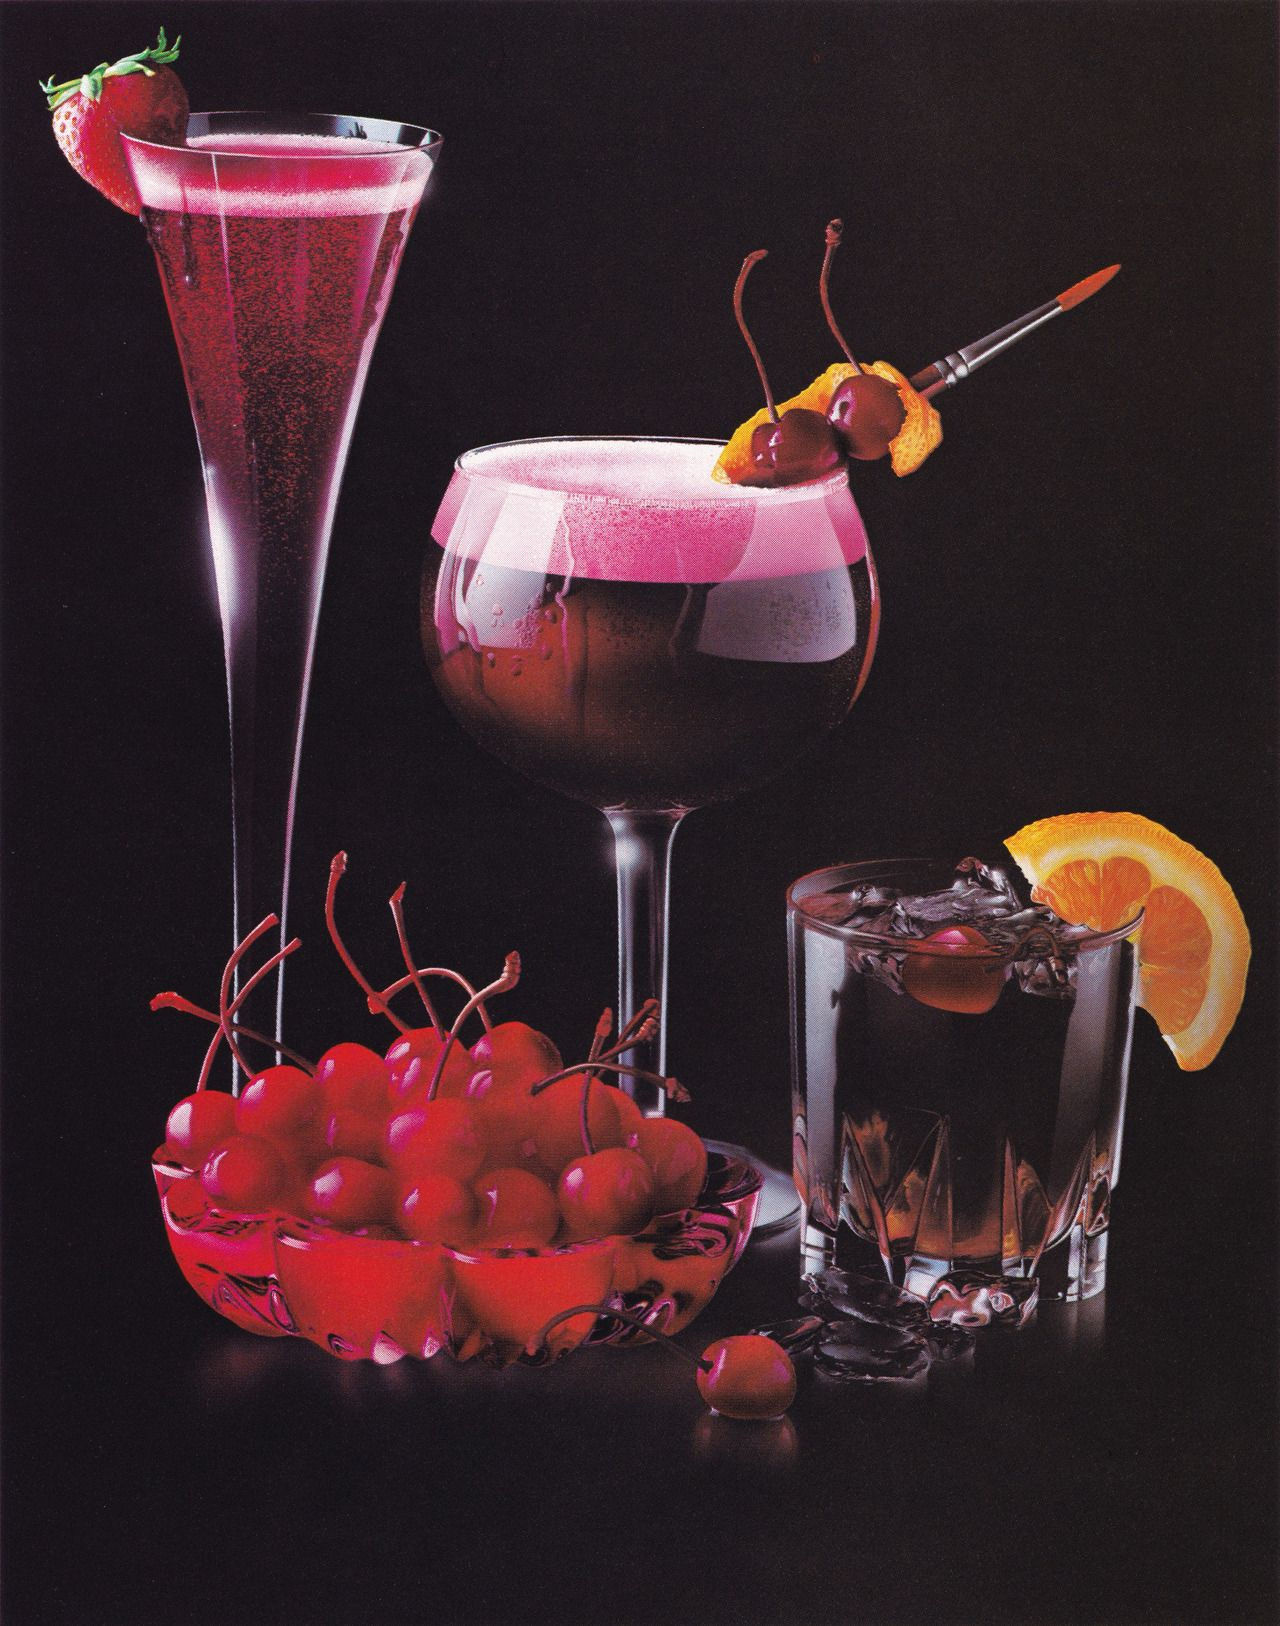 Capricorn Cherry Drink Food Illustrations Food And Drink